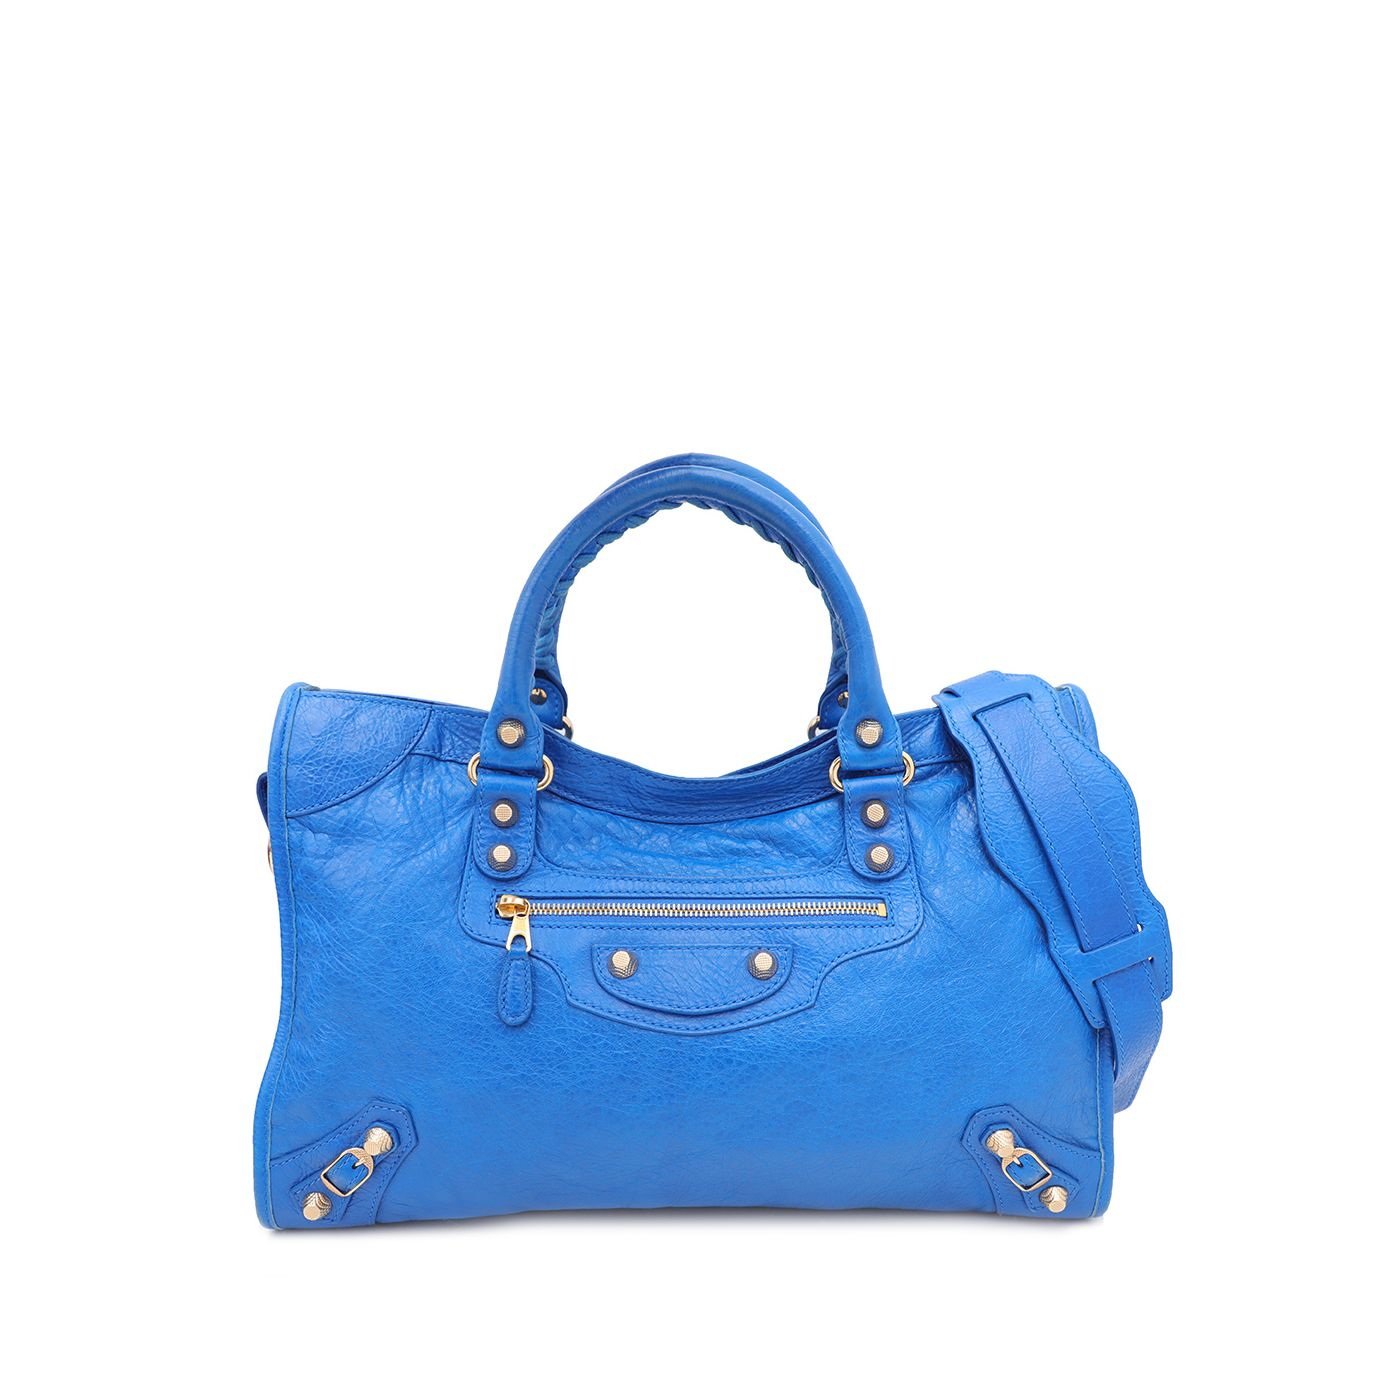 Balenciaga Blue Giant 12 City Bag